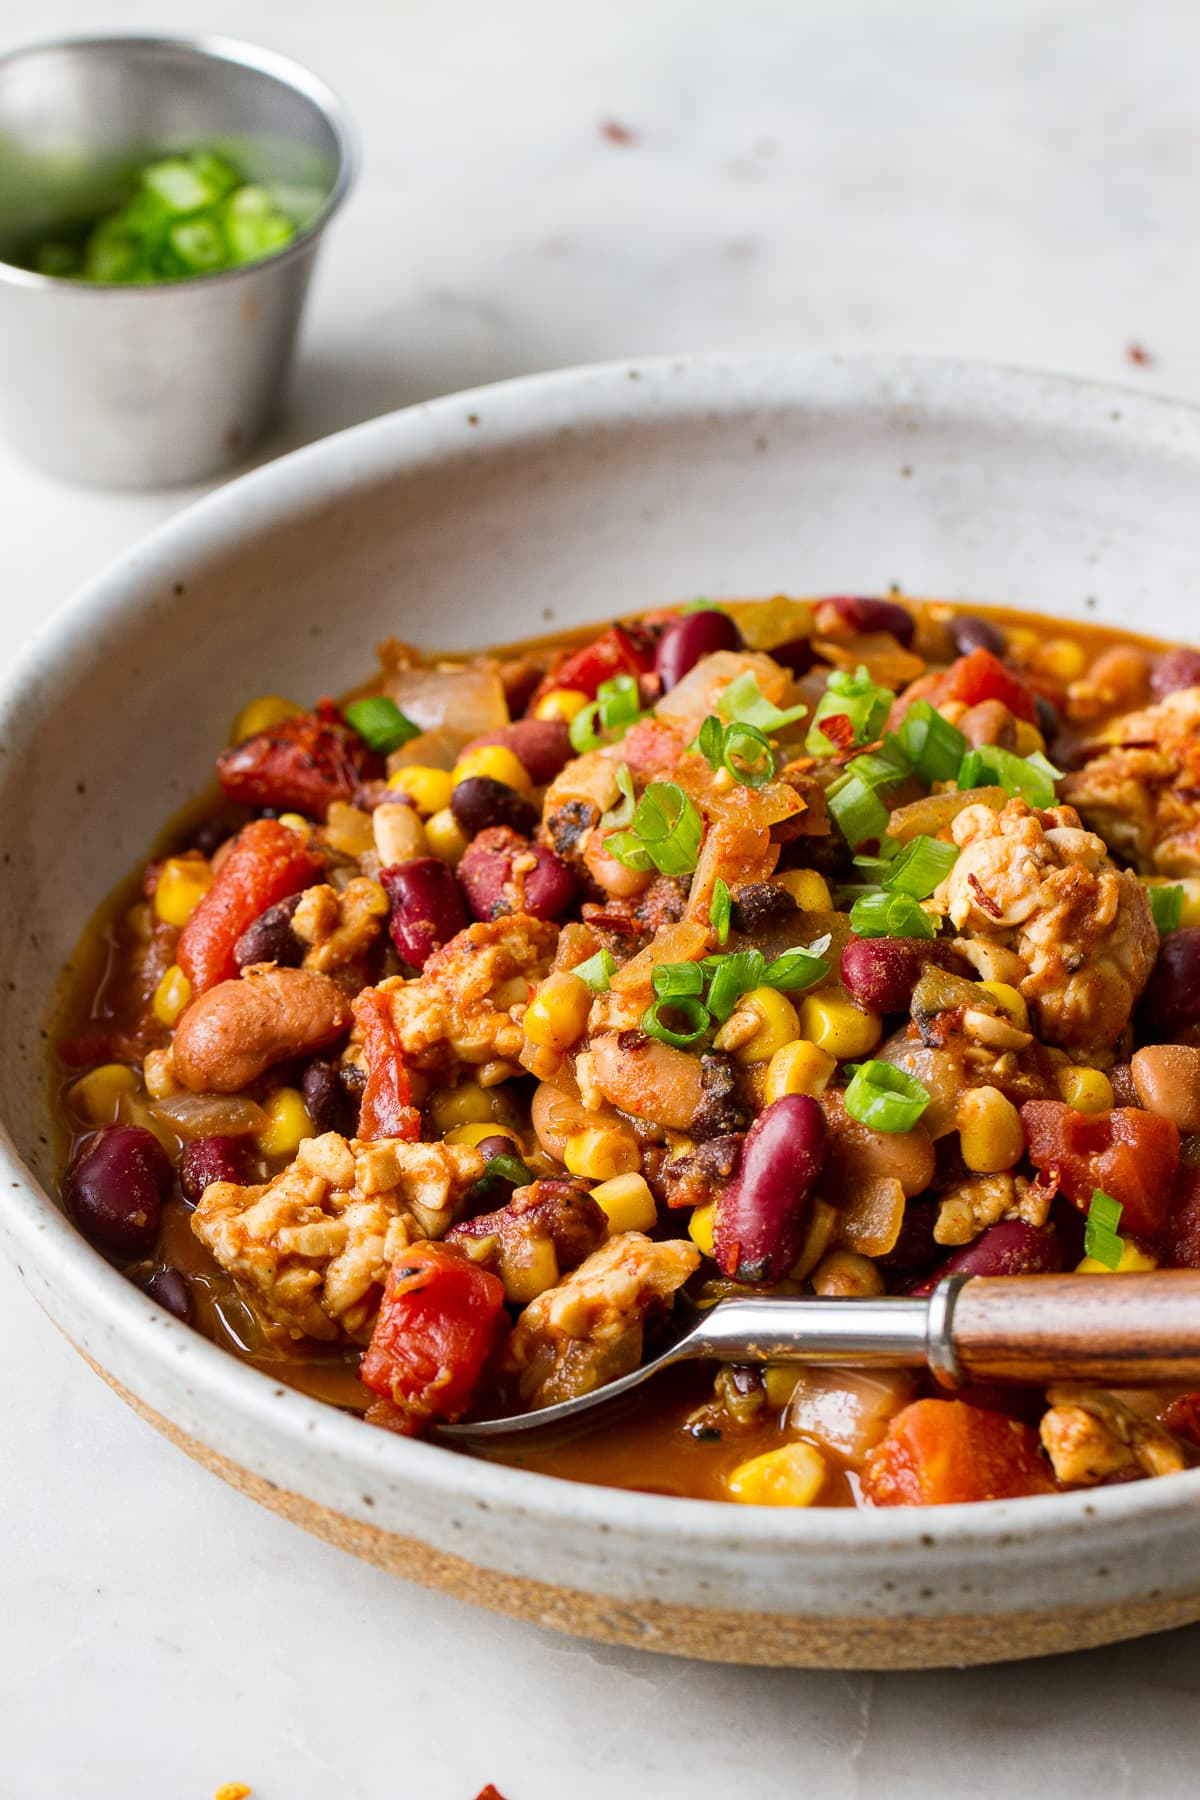 side angle view of a serving of vegan tempeh chili in a bowl with spoon.